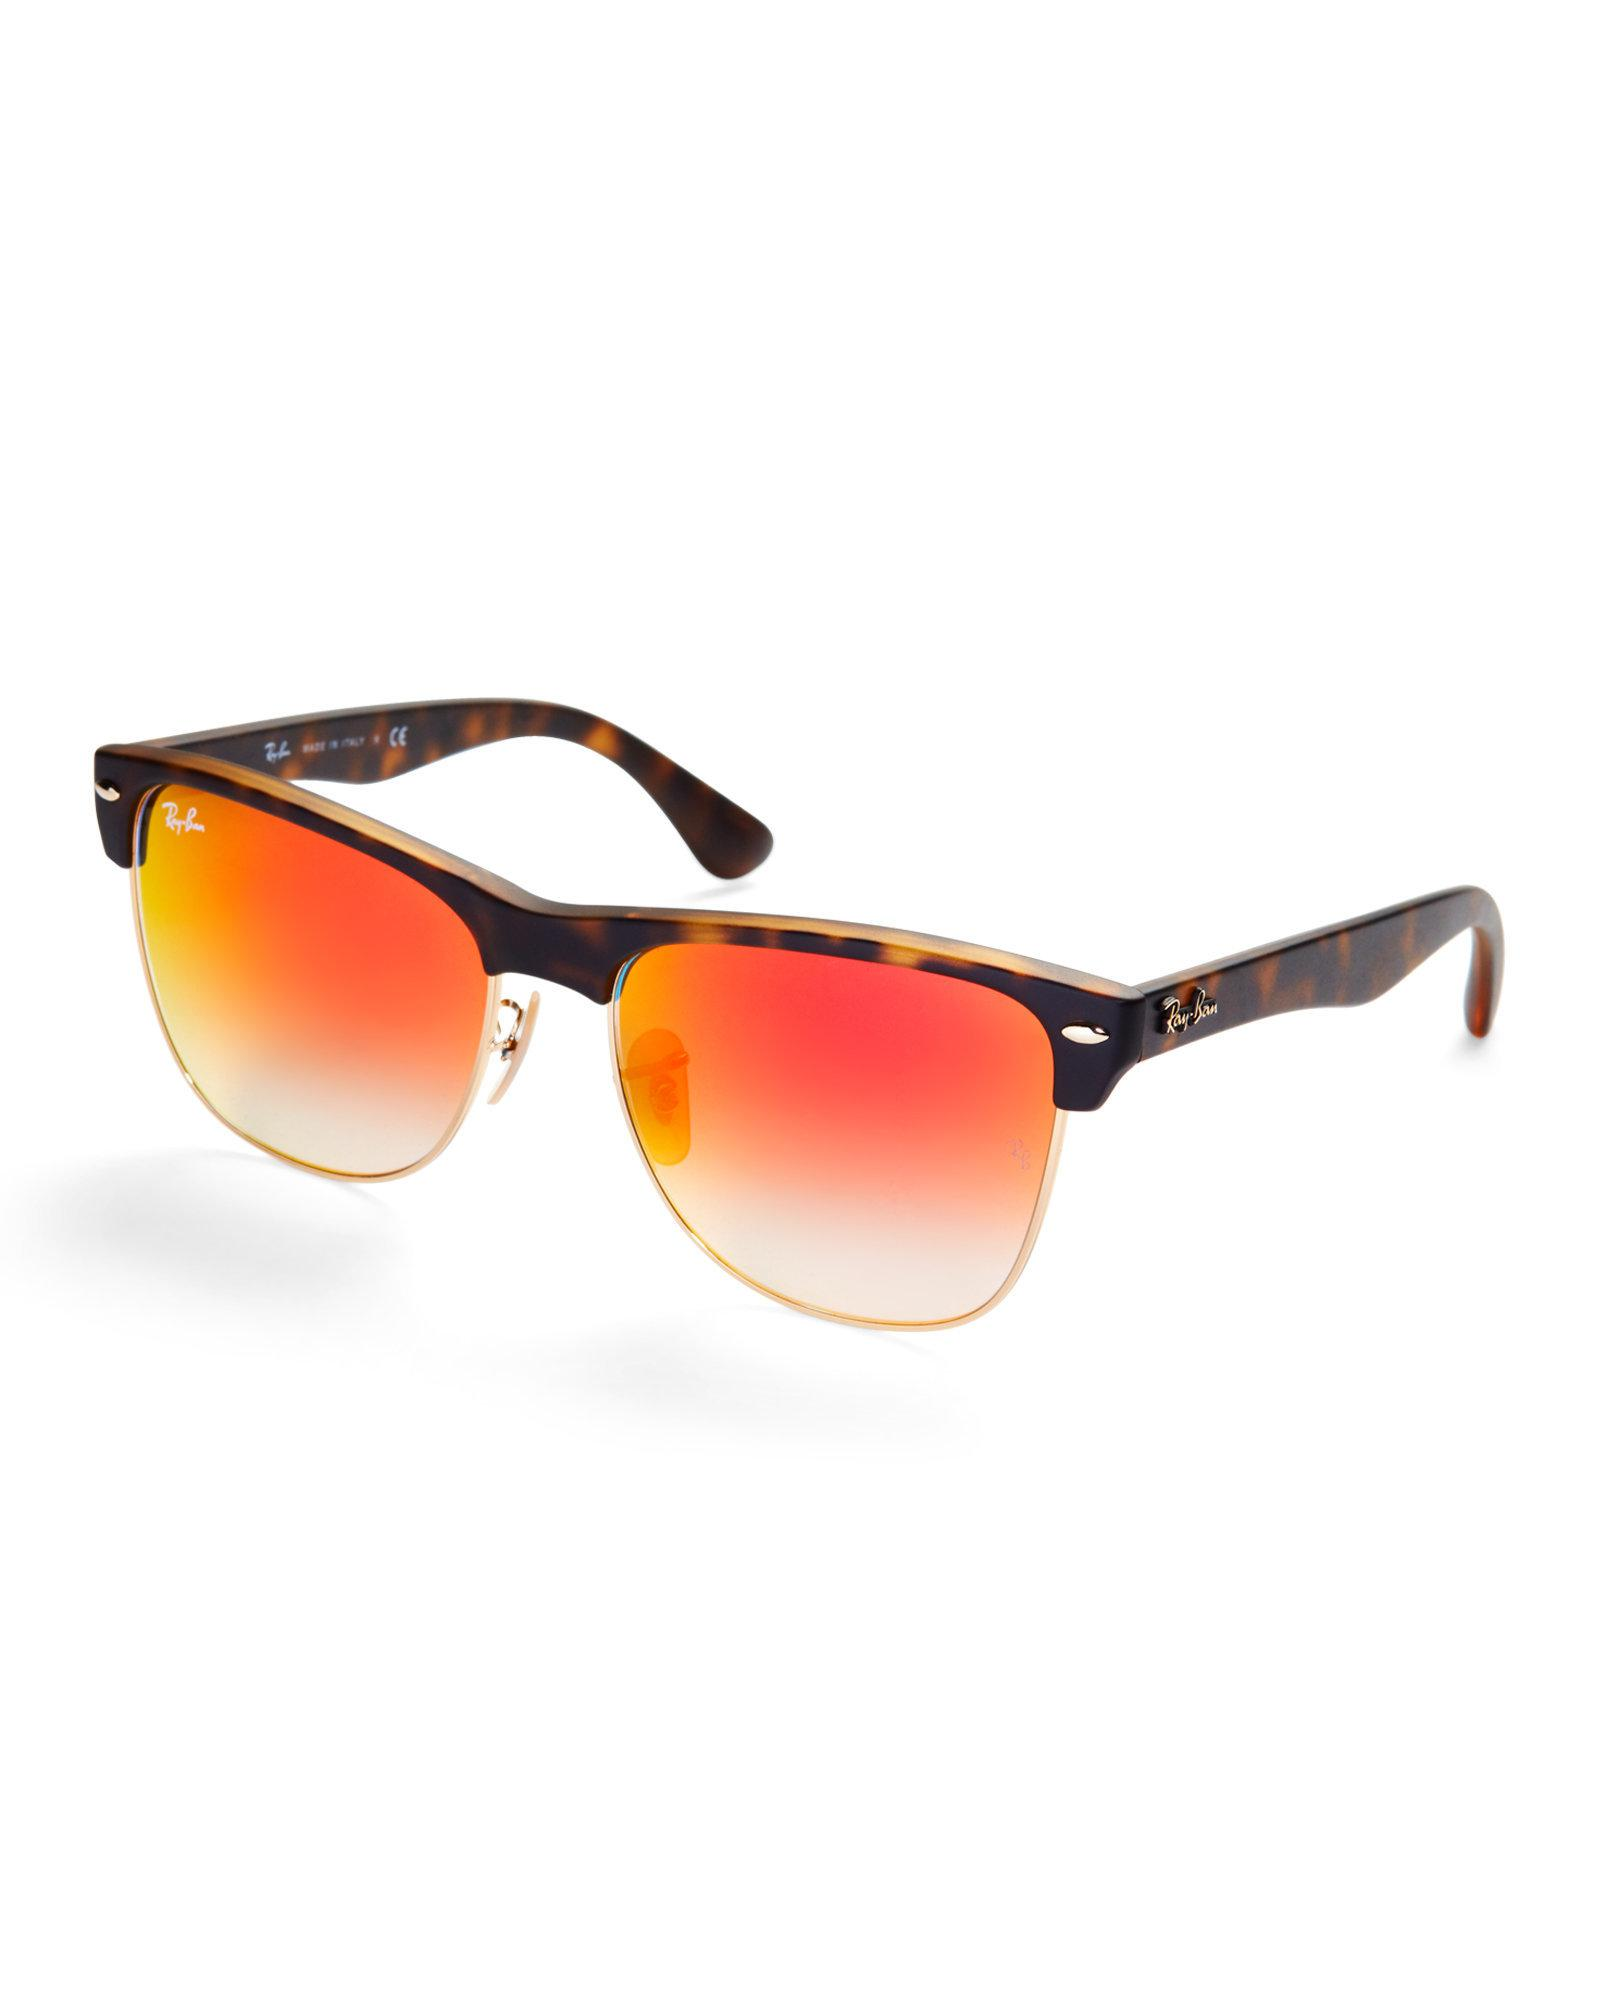 0b8fd35e10 Gallery. Previously sold at  Century 21 · Women s Clubmaster Sunglasses  Women s Ray Ban ...